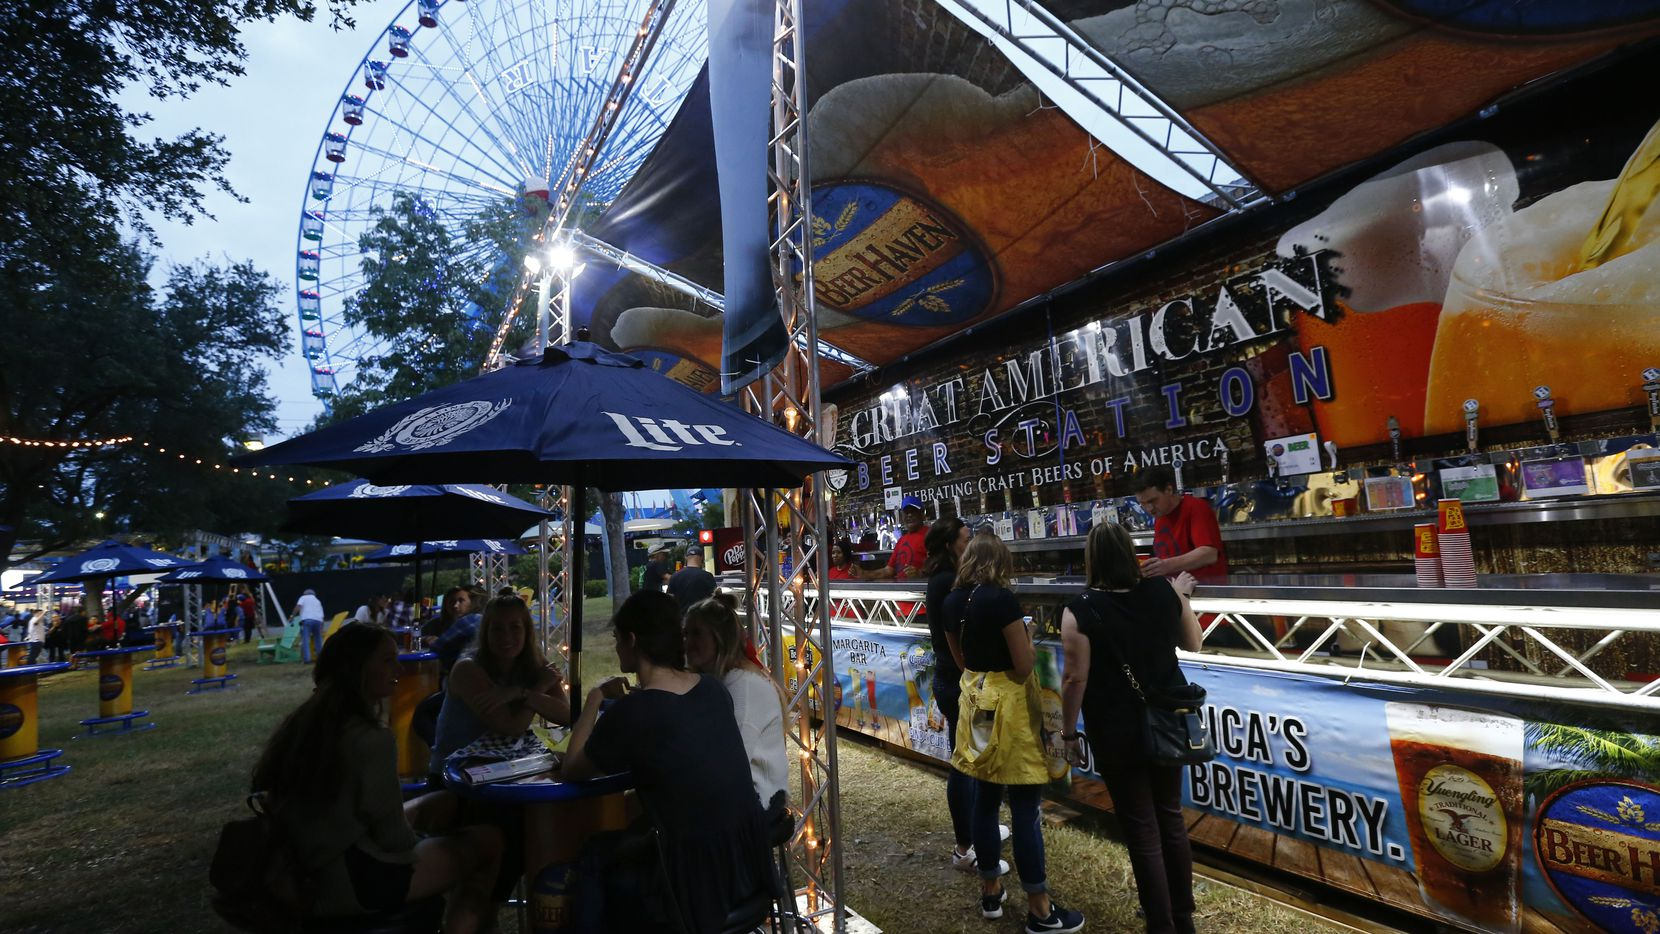 People order beer at the Beer Haven under the Texas Star Ferris wheel during the State Fair of Texas' opening day on Sept. 29, 2017.